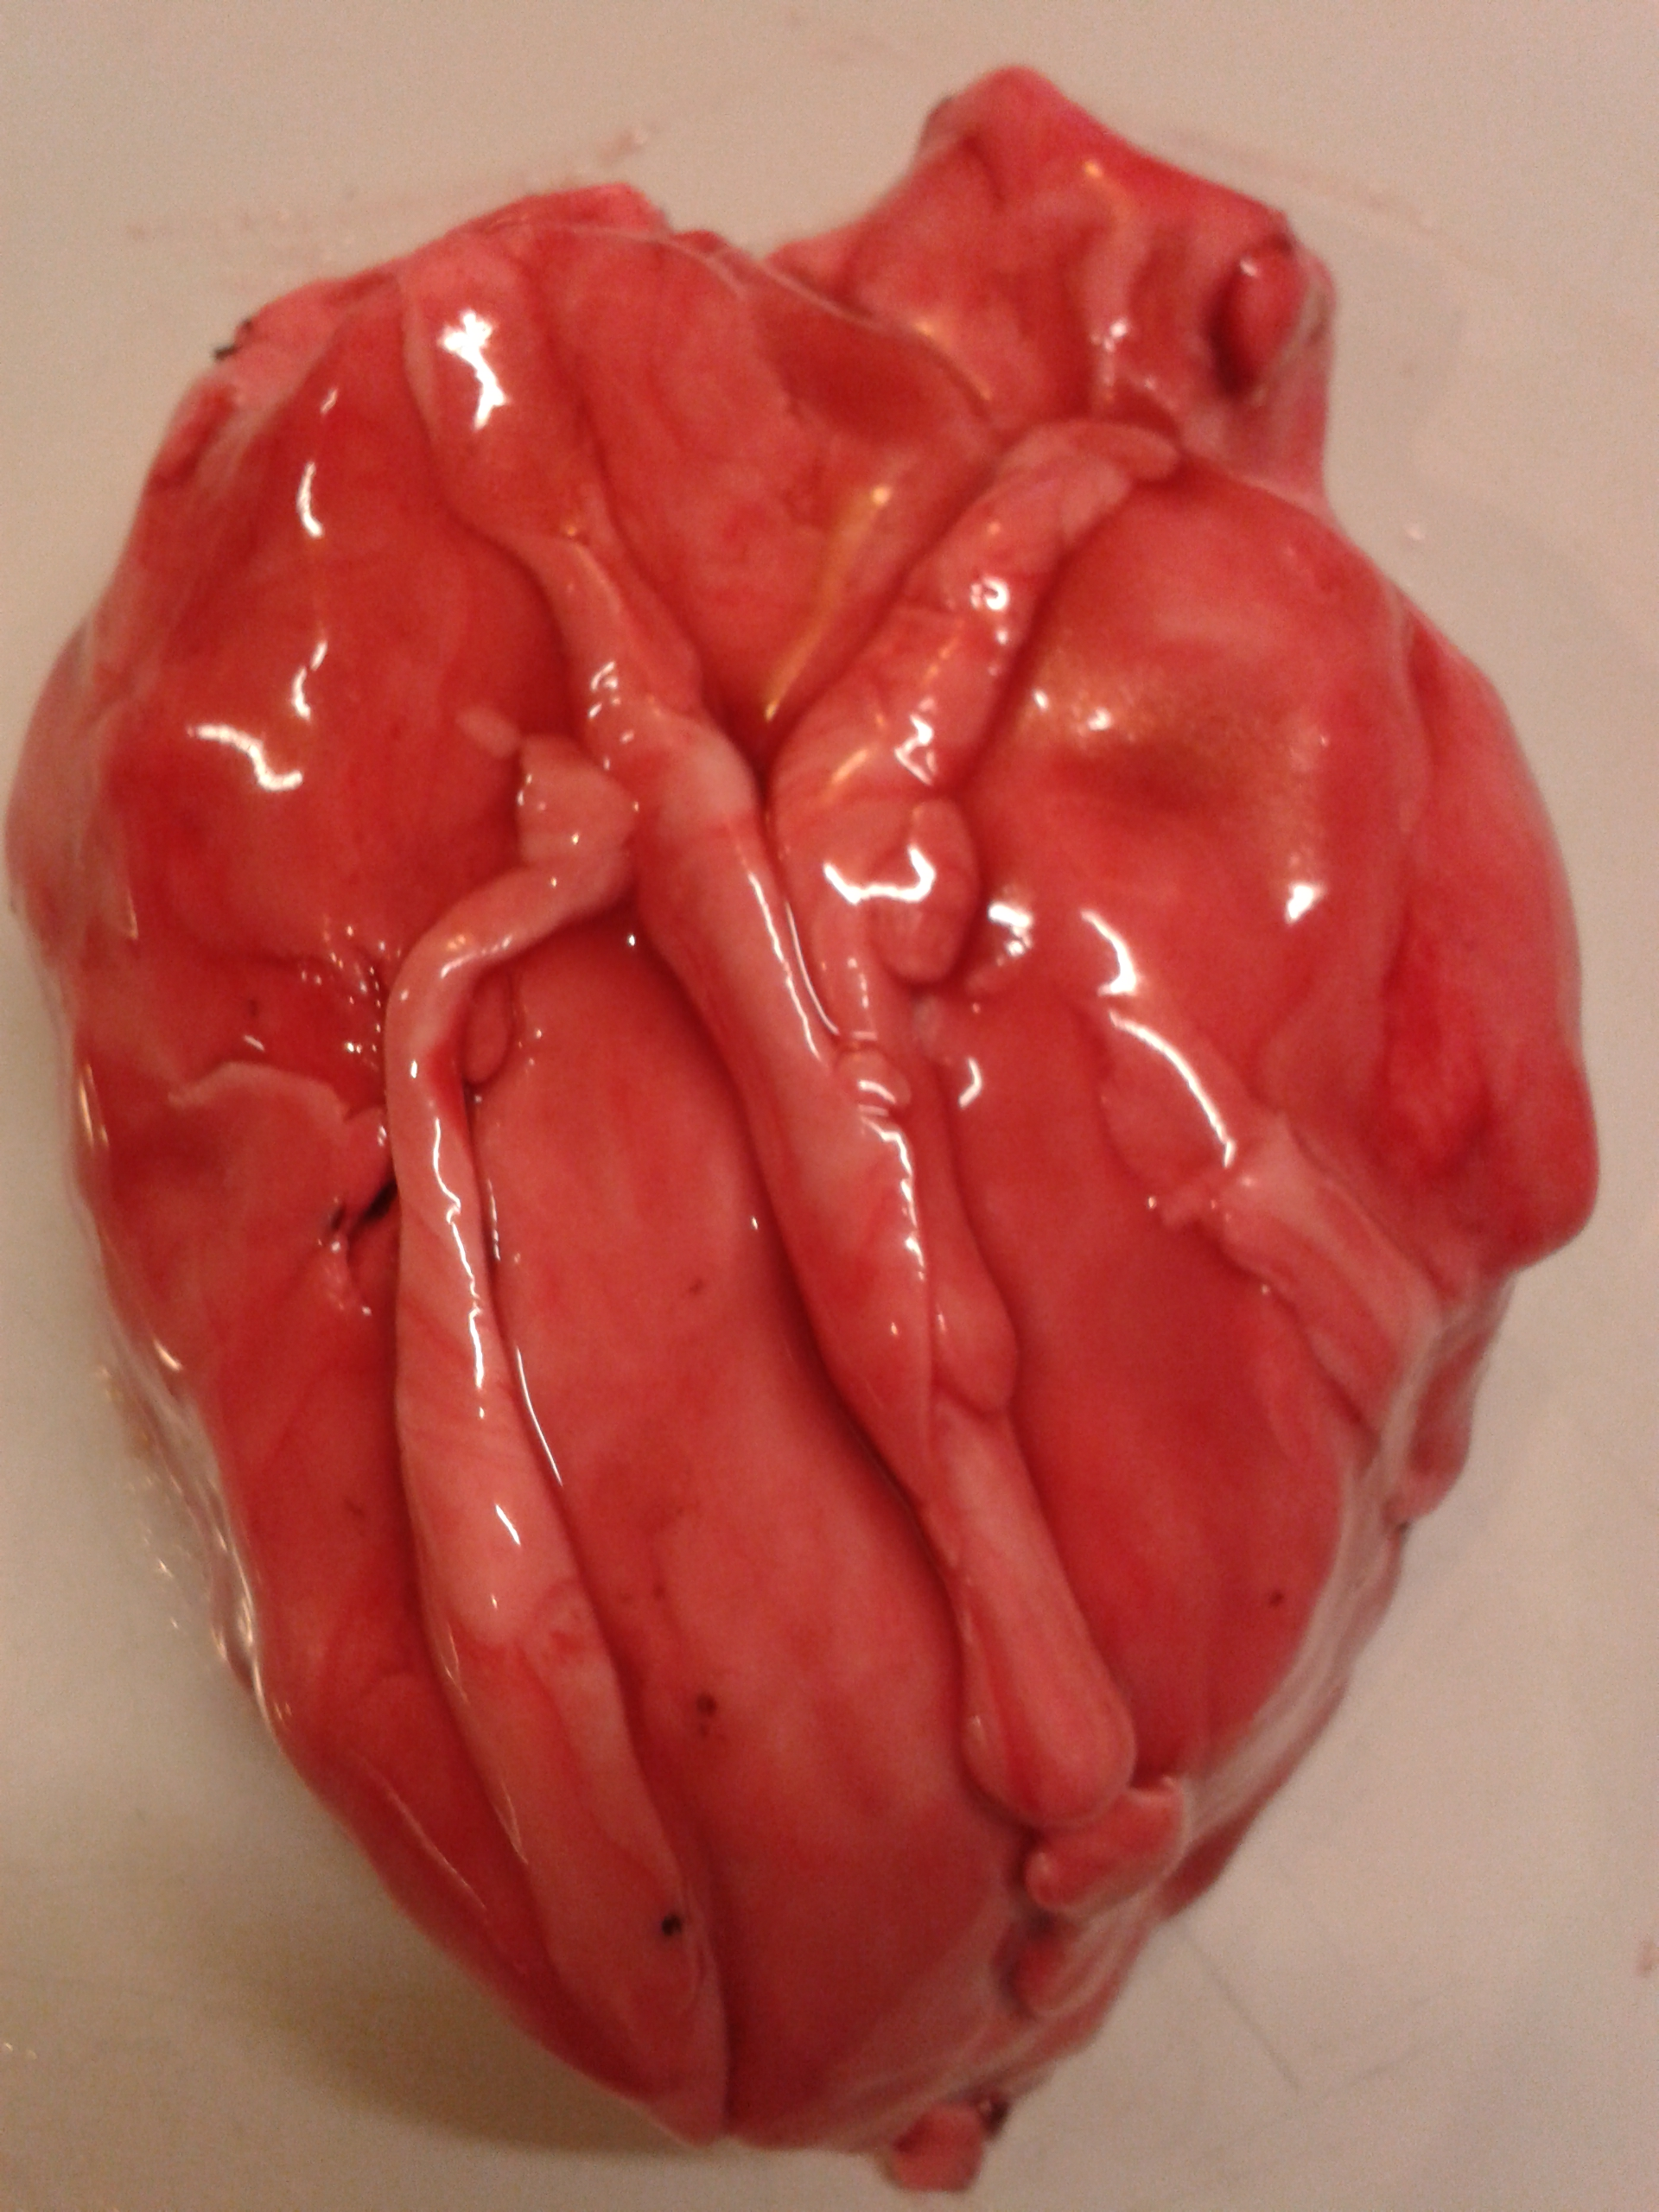 real human heart beating - photo #19